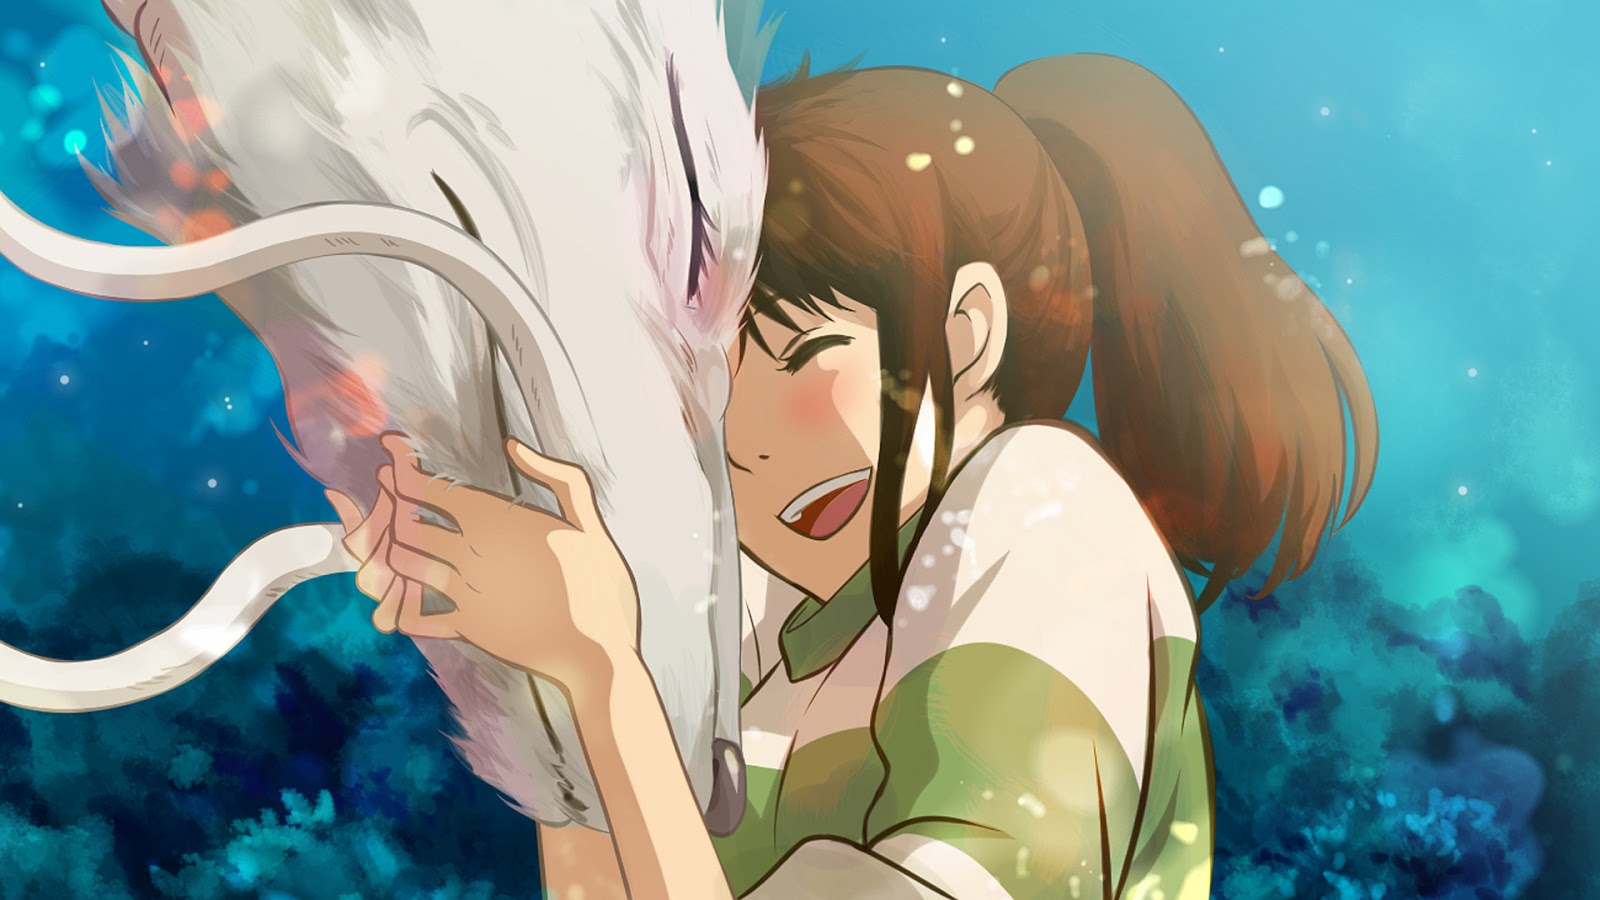 Rachel's movie blog : Film review on Spirited Away and ...